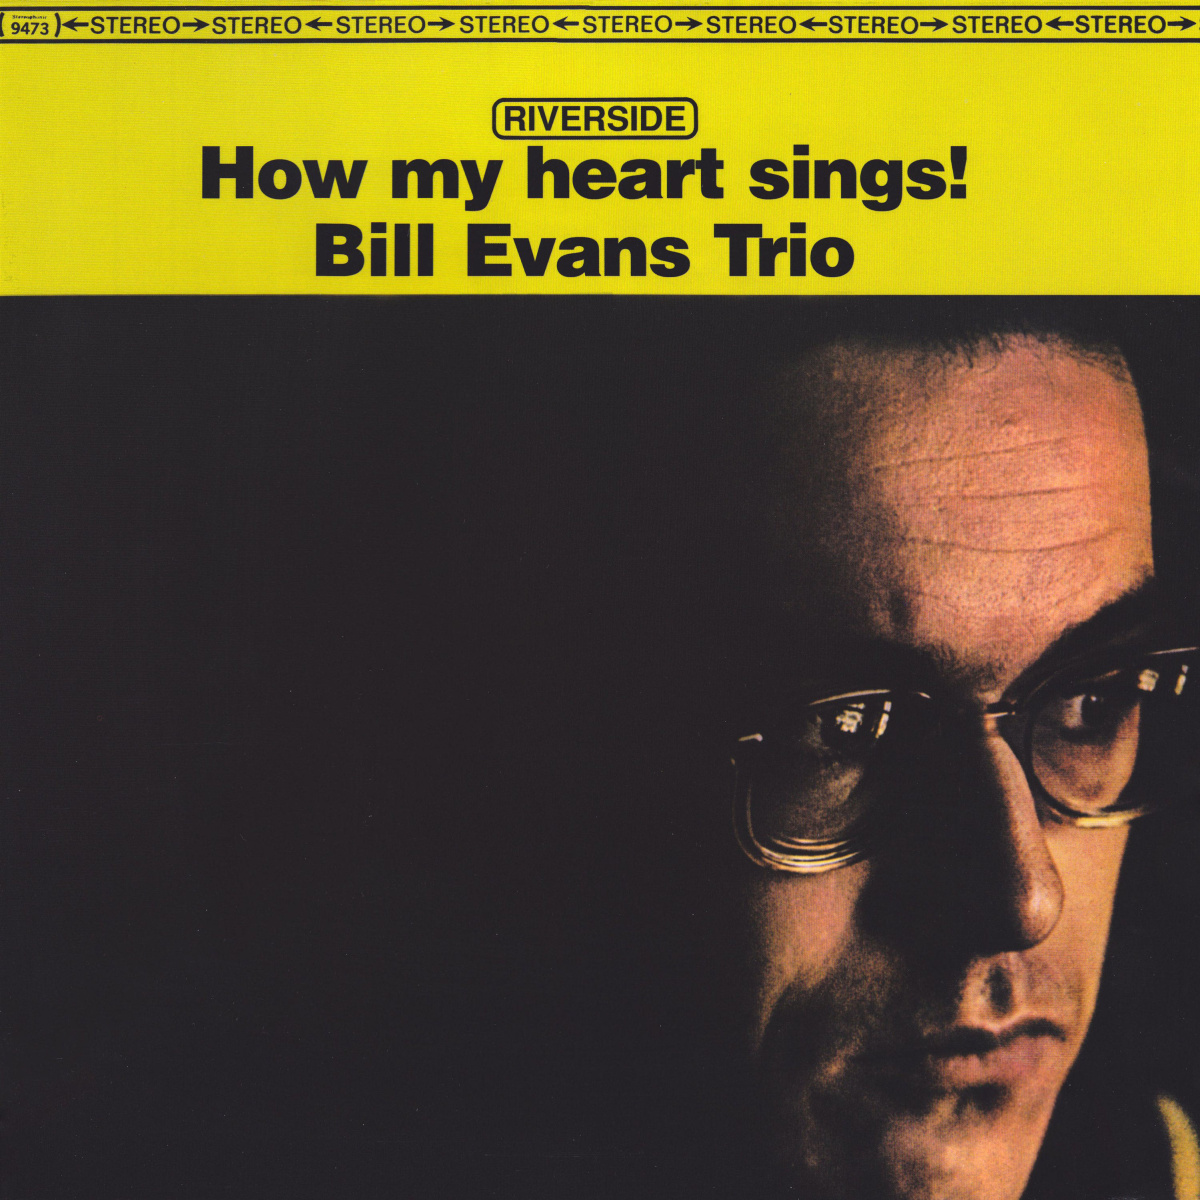 Legal Release Wikipedia How My Heart Sings By The Bill Evans Trio Review